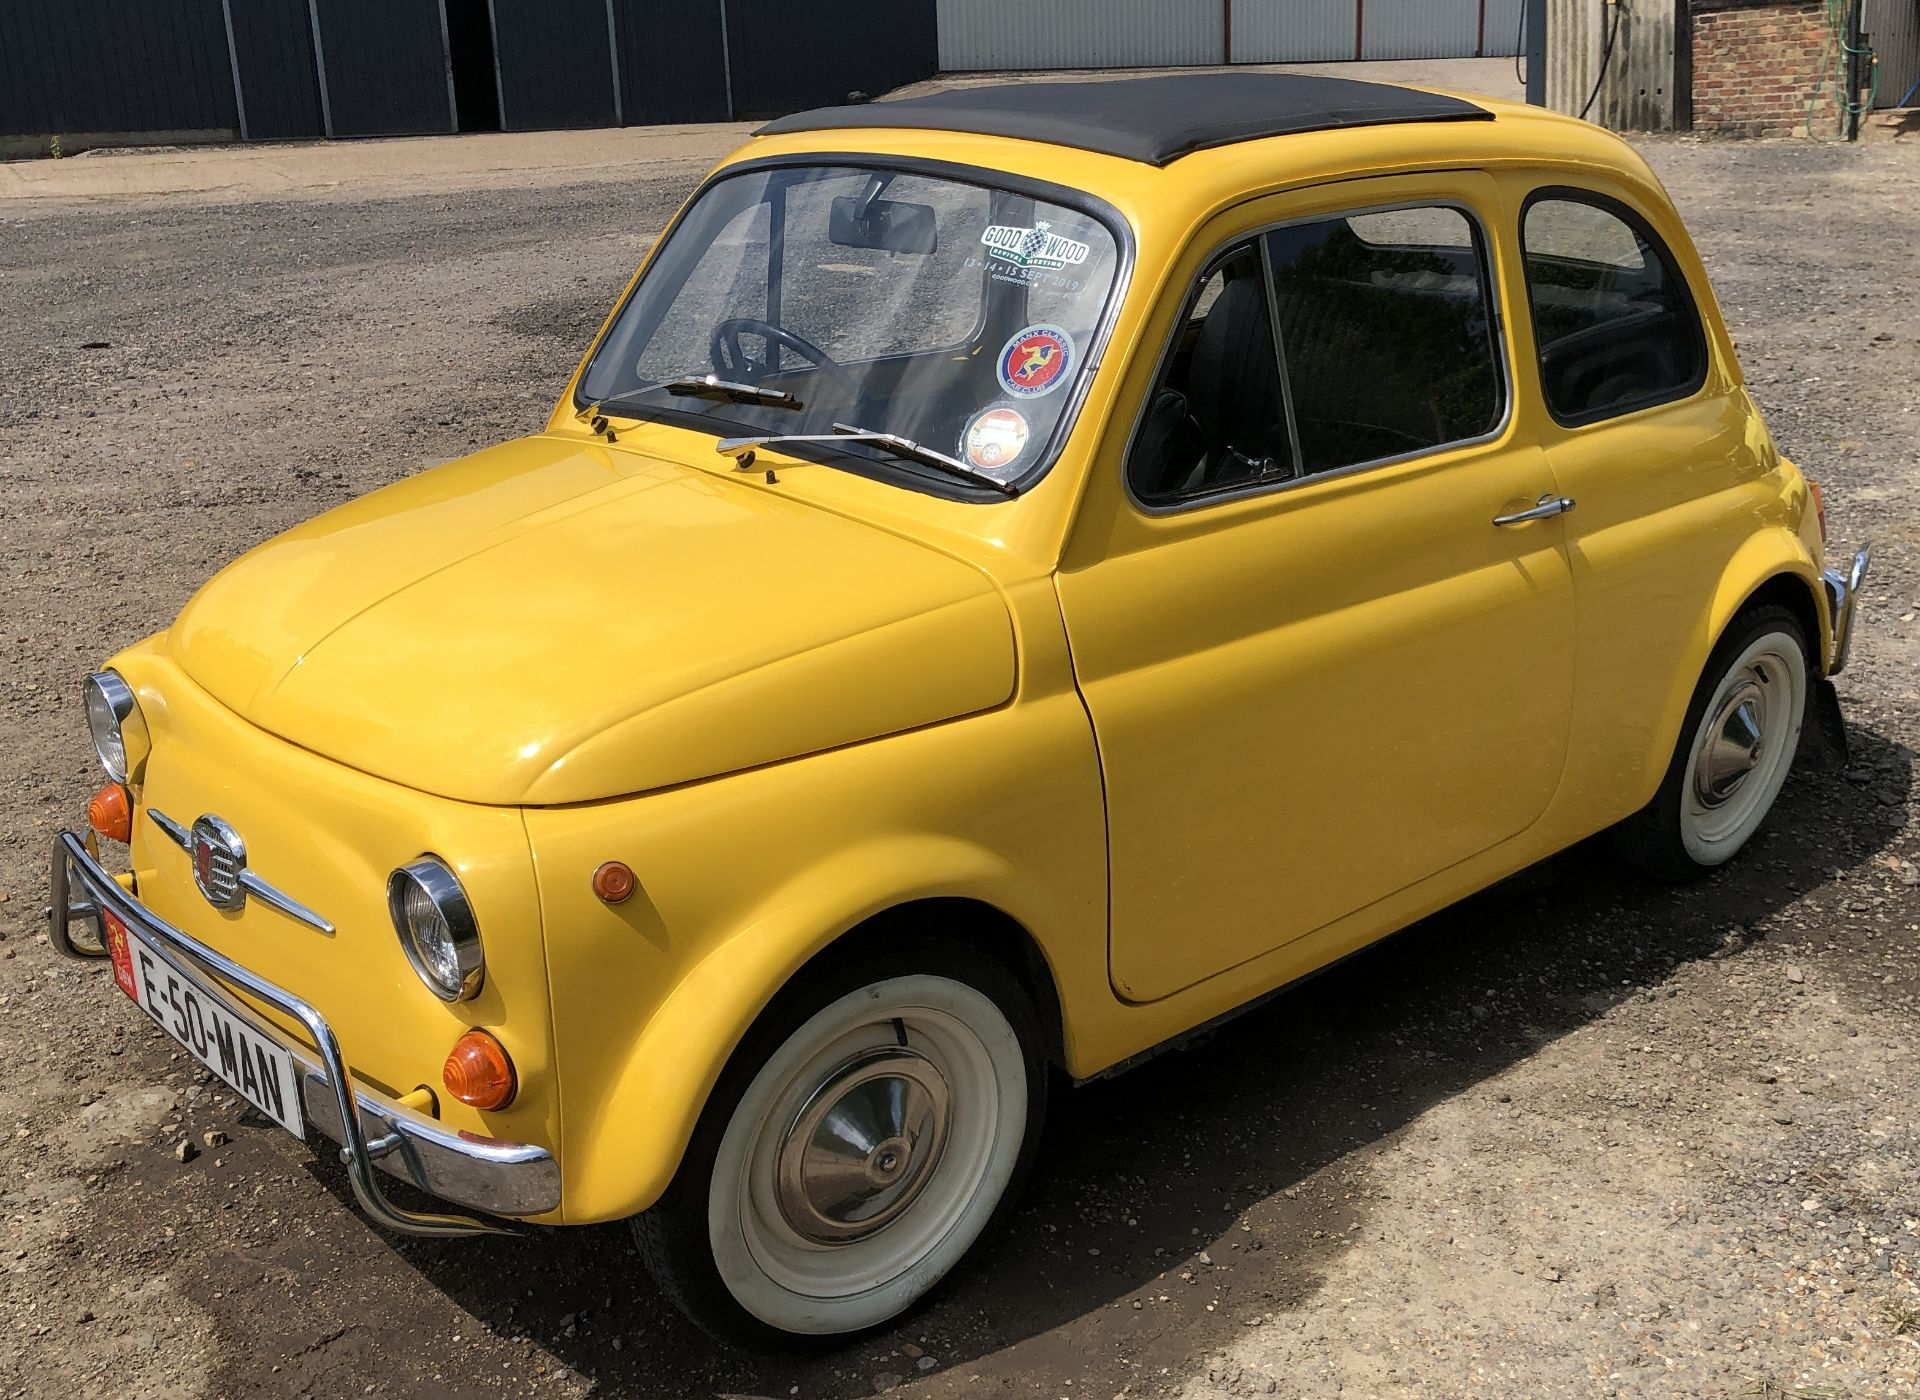 1972 Fiat 500 Saloon, Registration E-50-Man (IOM, Formally Registered as TGF 249L), First Registered - Image 8 of 34